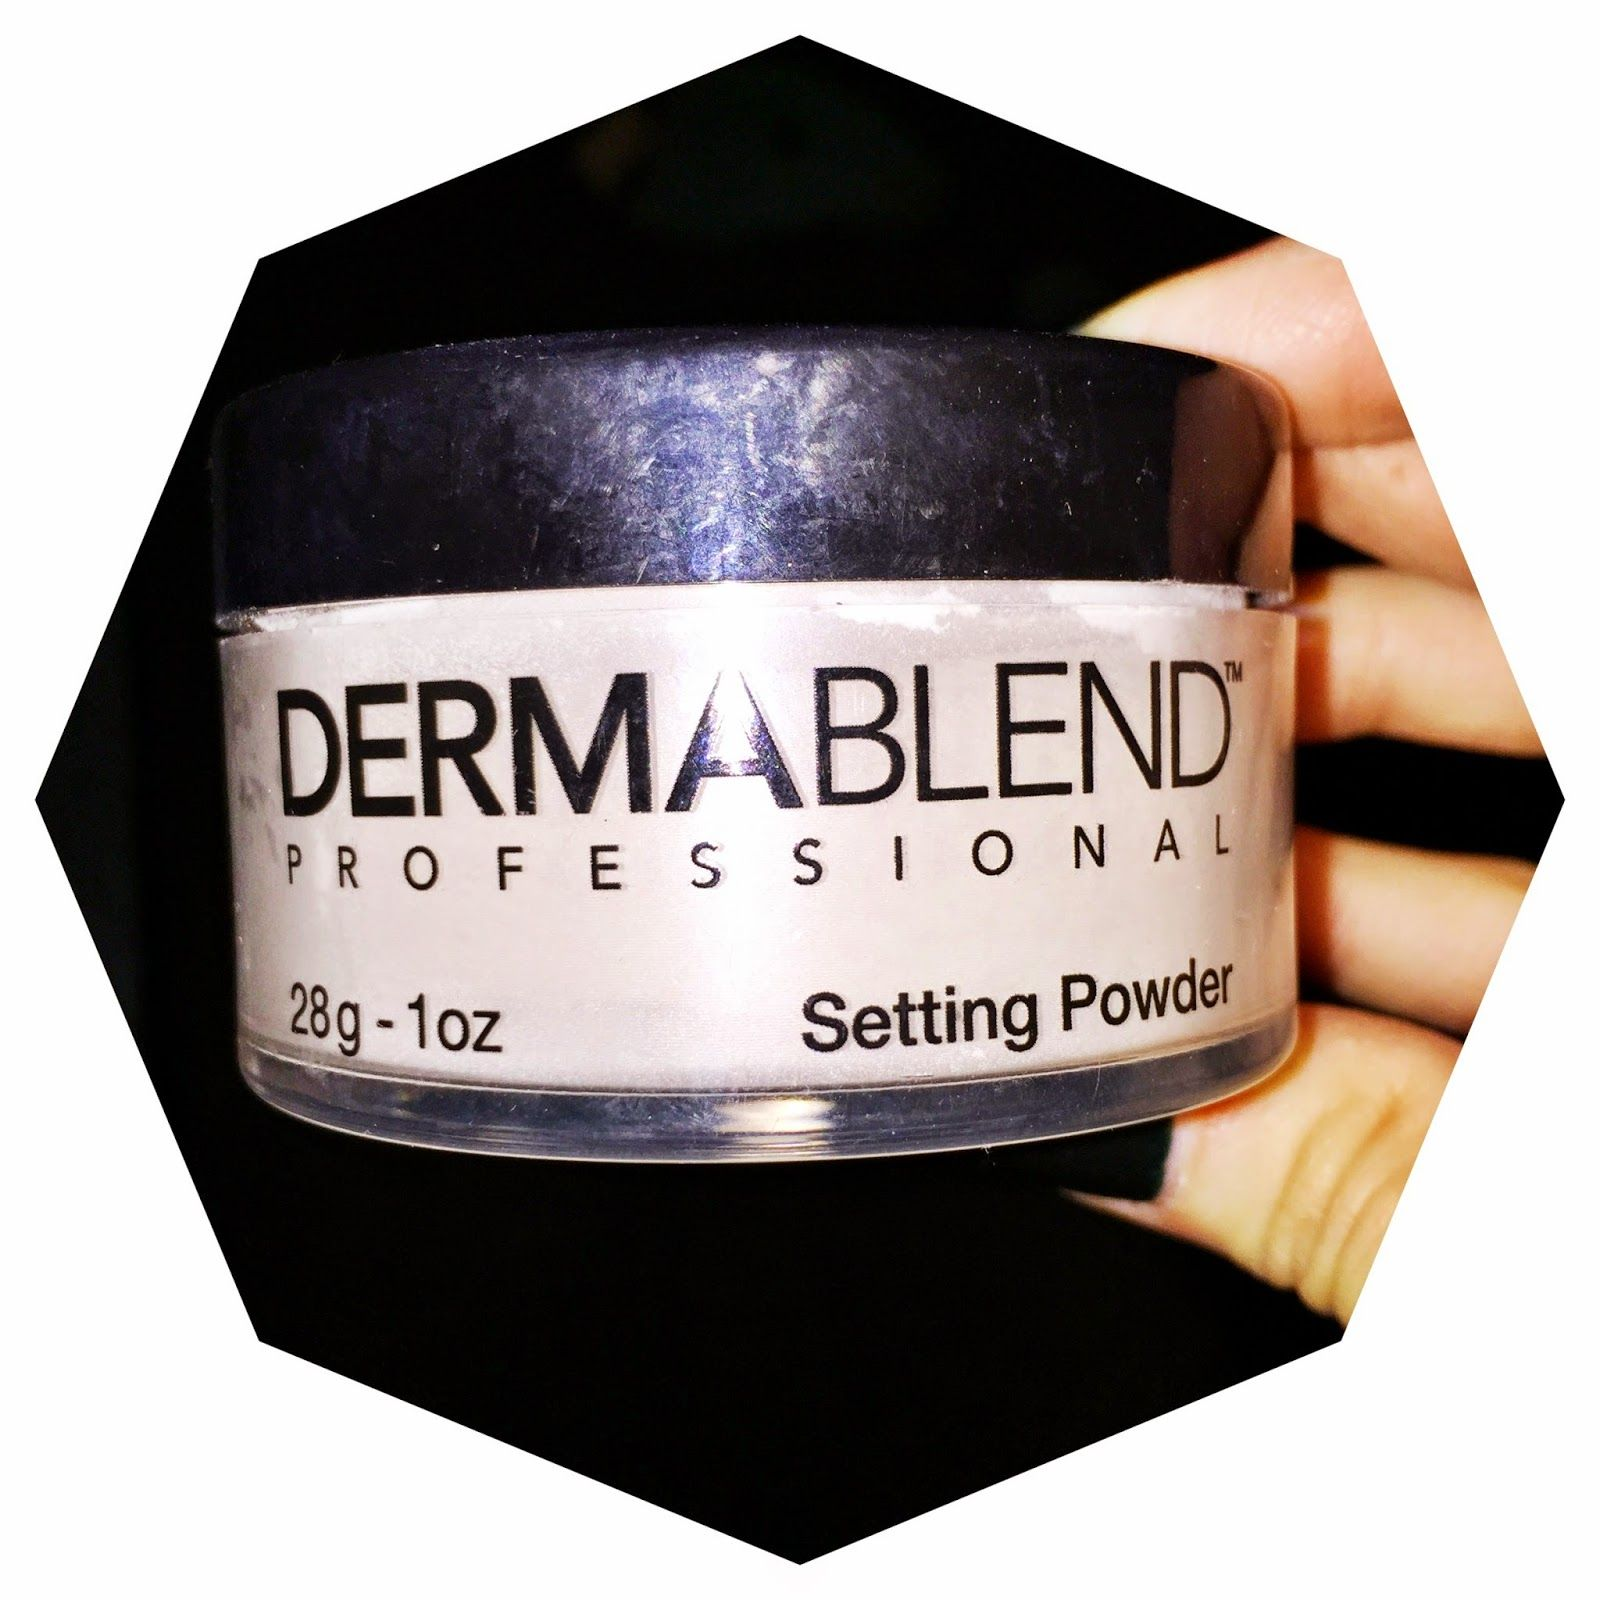 Dermablend Professional setting powder! Check this out at